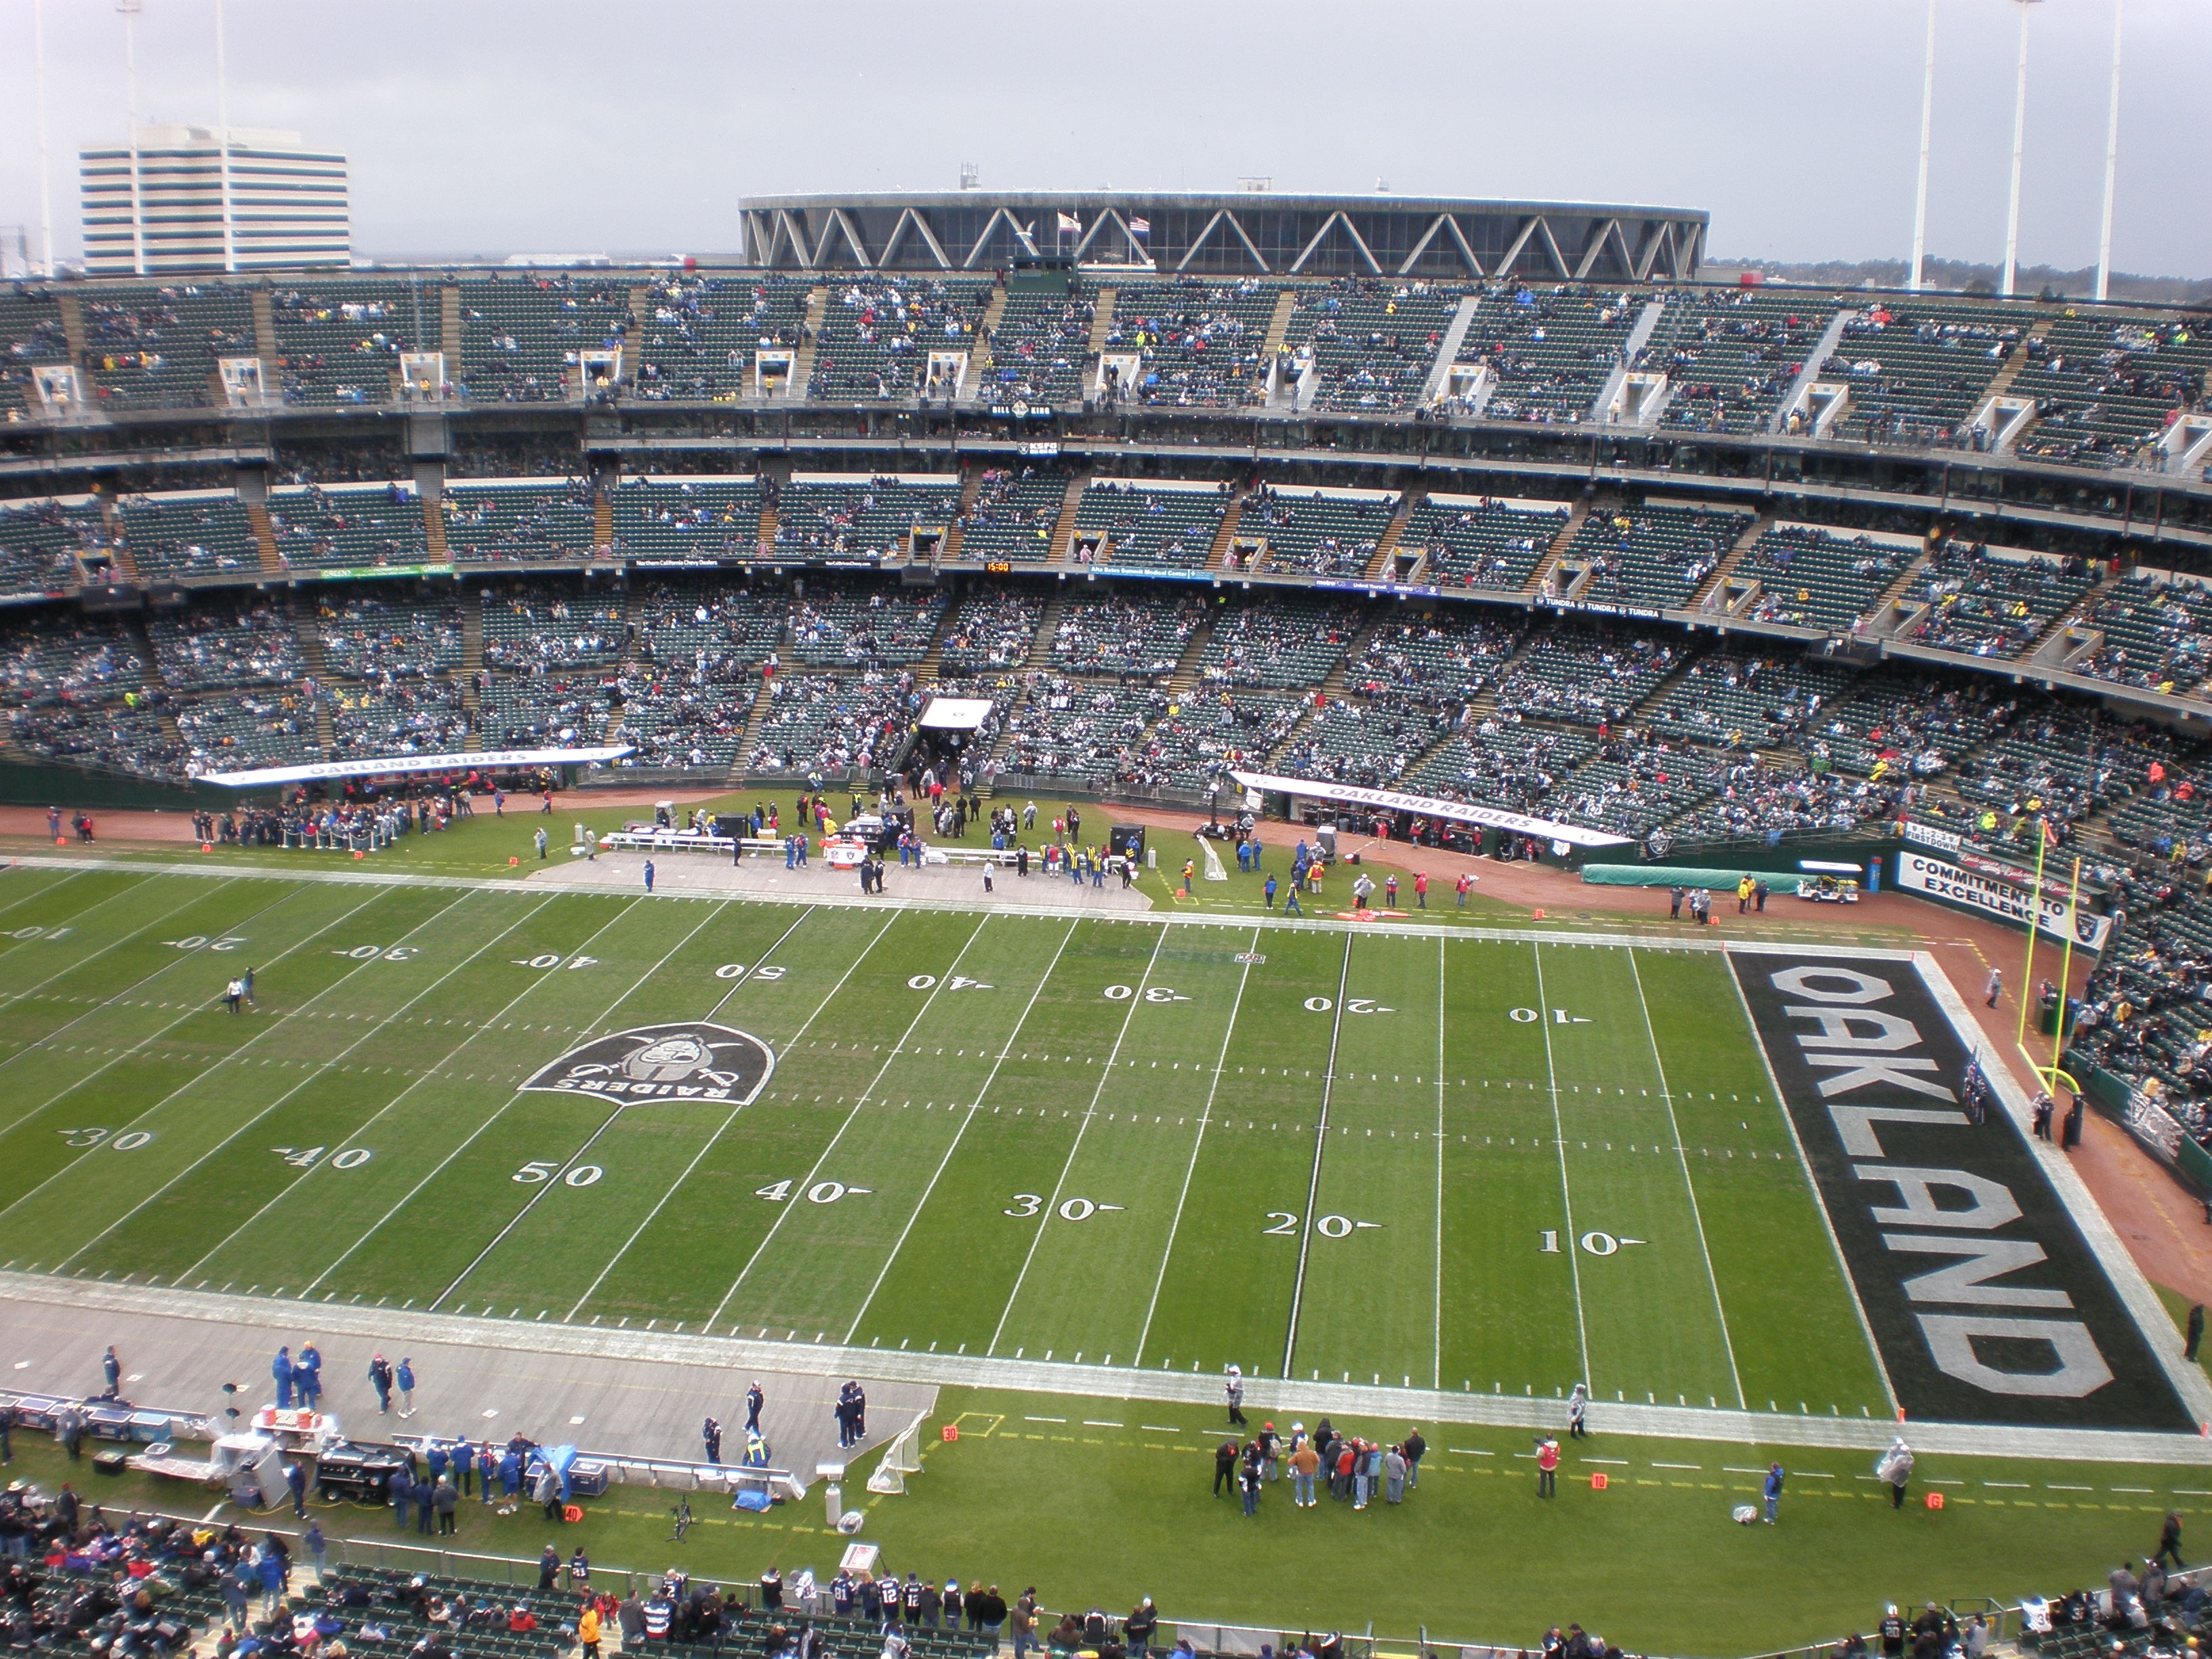 O.co Coliseum as a football field